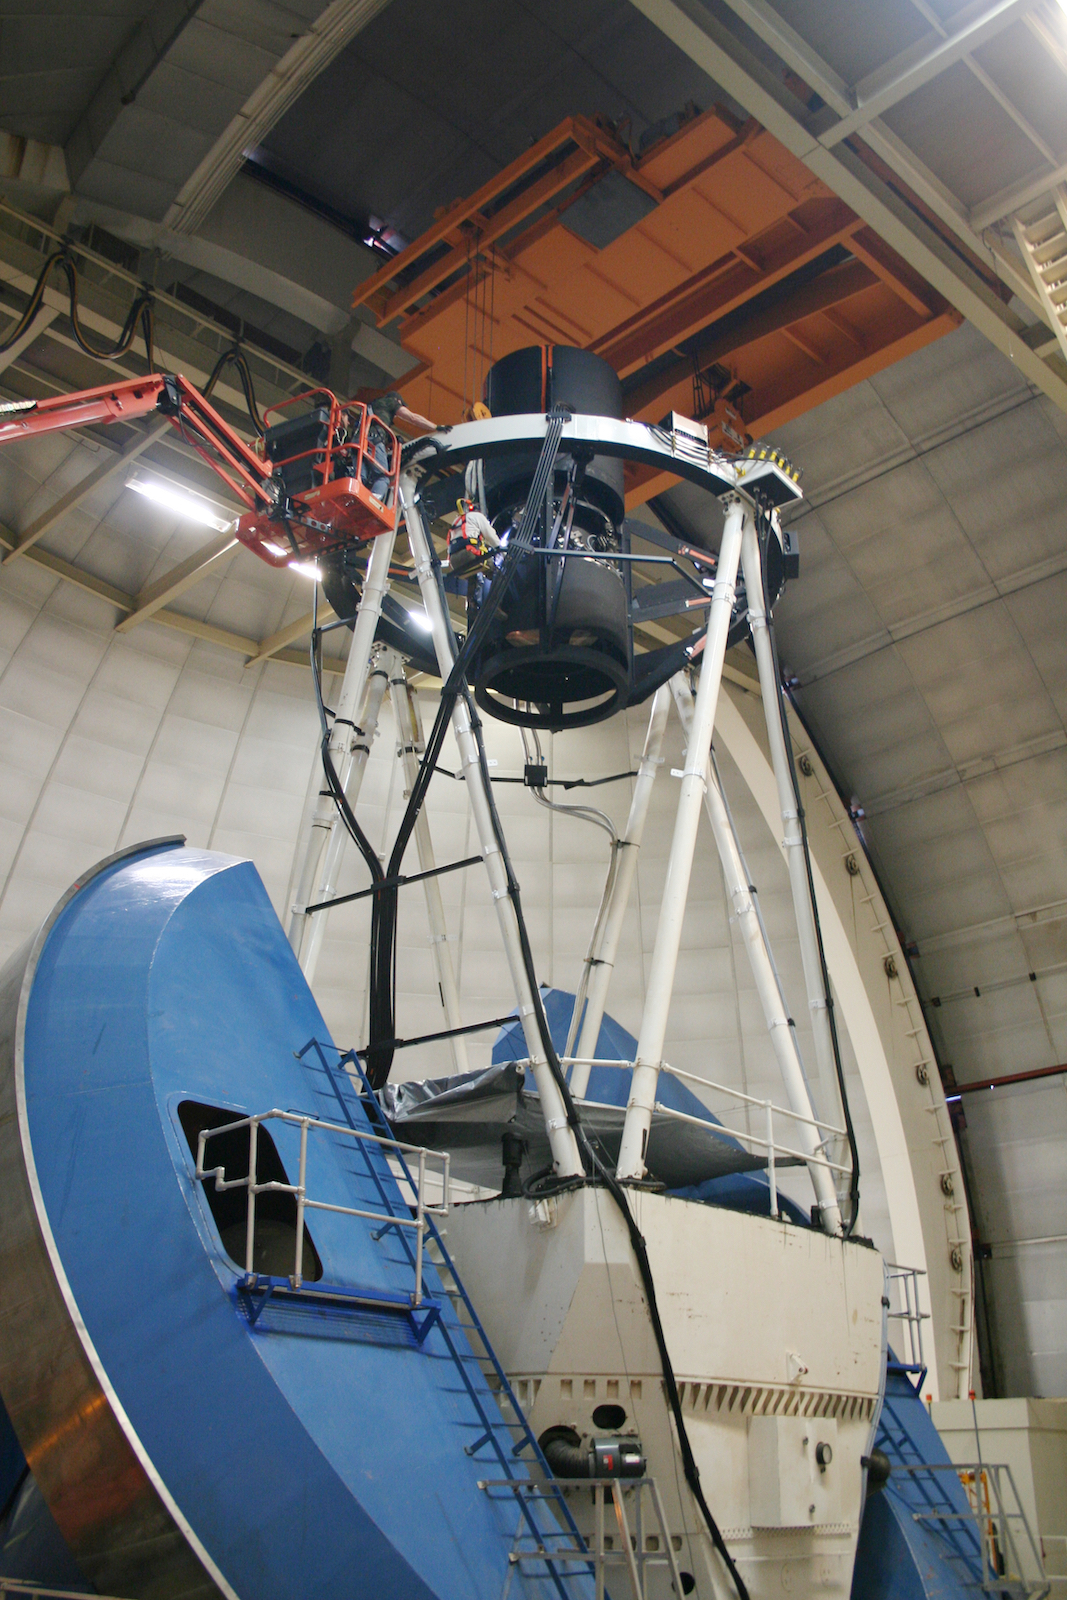 Photo - Workers install a component on DESI, which is mounted on the Mayall Telescope at Kitt Peak National Observatory. (Photo courtesy of Robert Besuner/DESI collaboration)